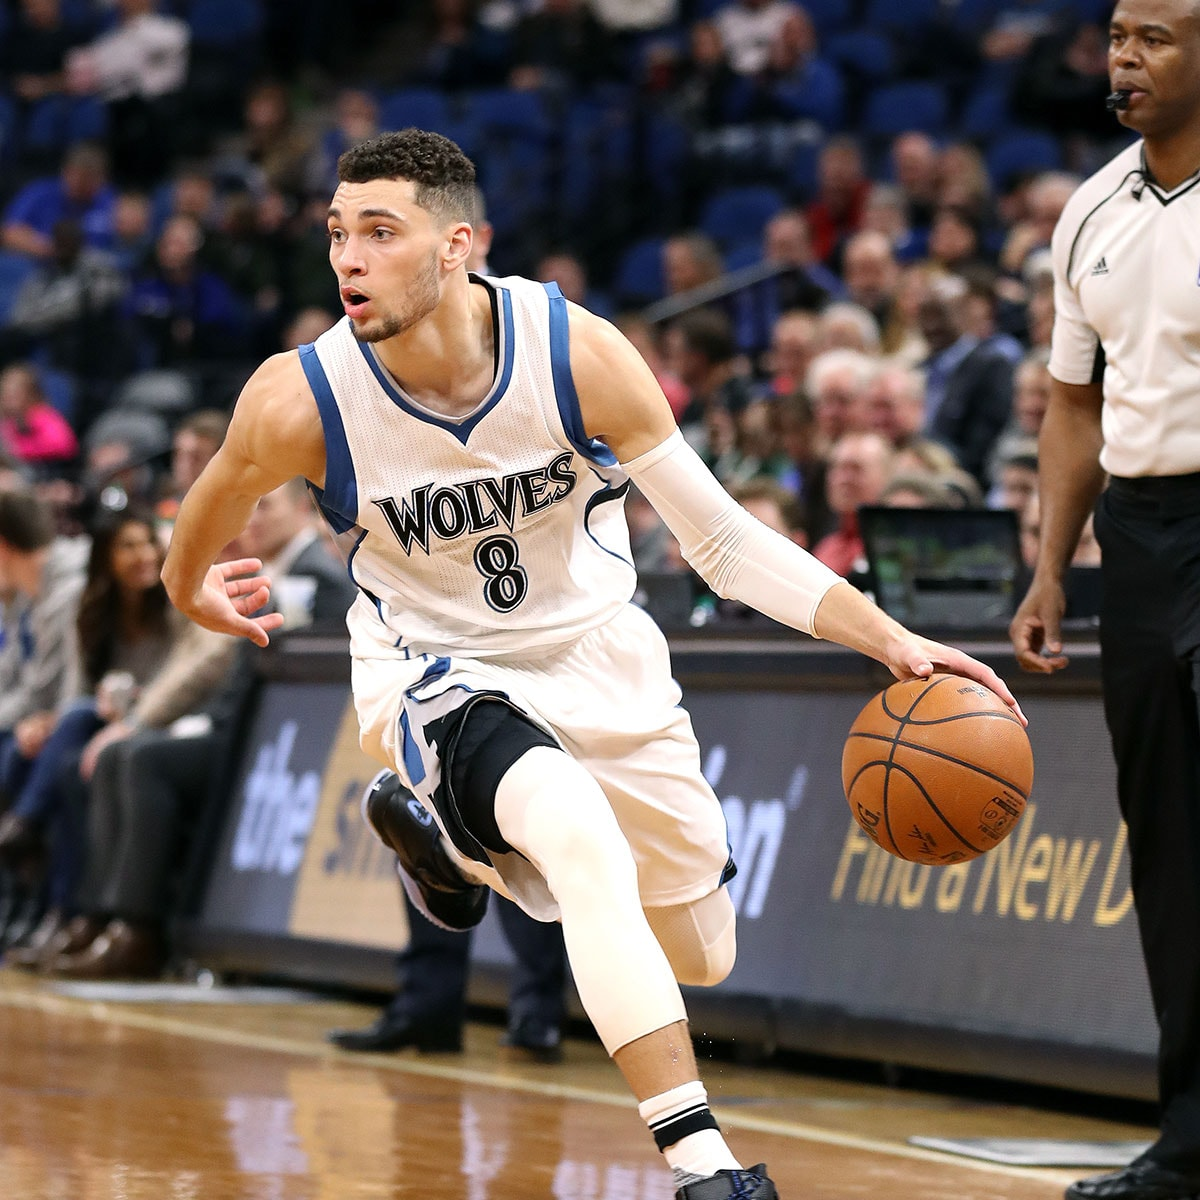 Zach LaVine #8 of the Minnesota Timberwolves handles the ball during the game against the Orlando Magic on January 30, 2017 at Target Center in Minneapolis, Minnesota.